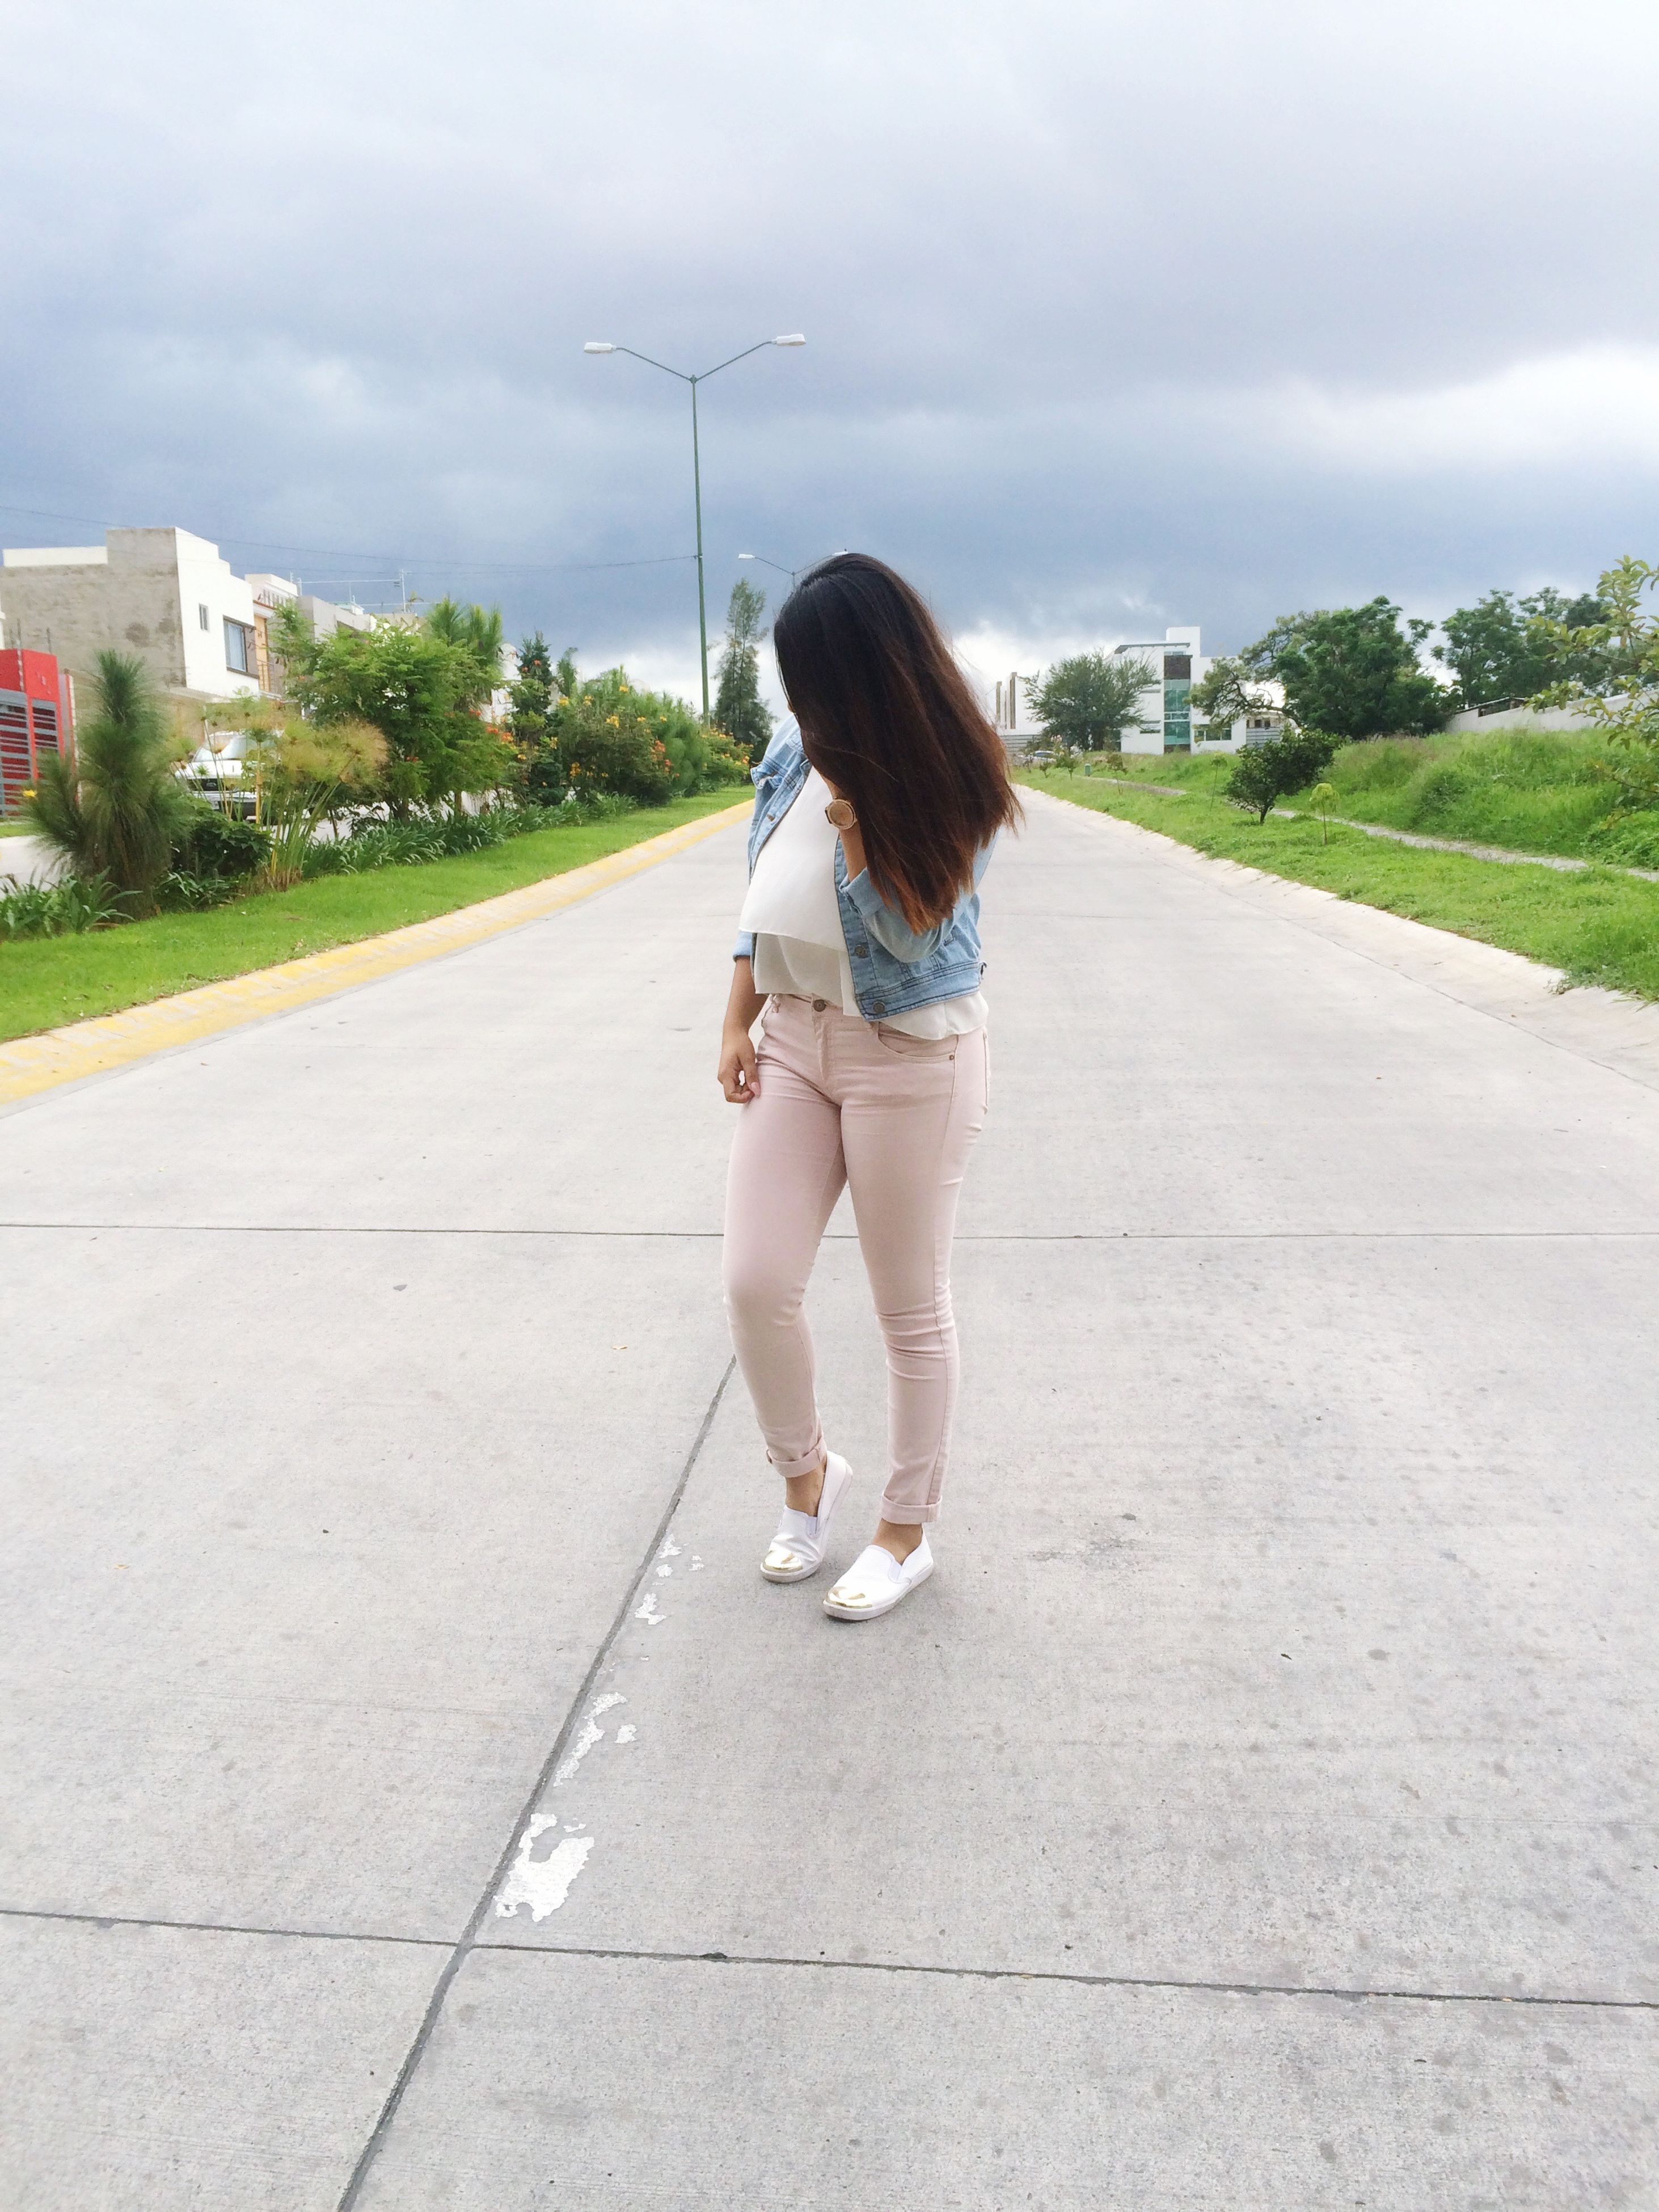 full length, leisure activity, lifestyles, long hair, casual clothing, young women, young adult, sky, person, cloud - sky, day, weekend activities, vacations, nature, outdoors, city life, footpath